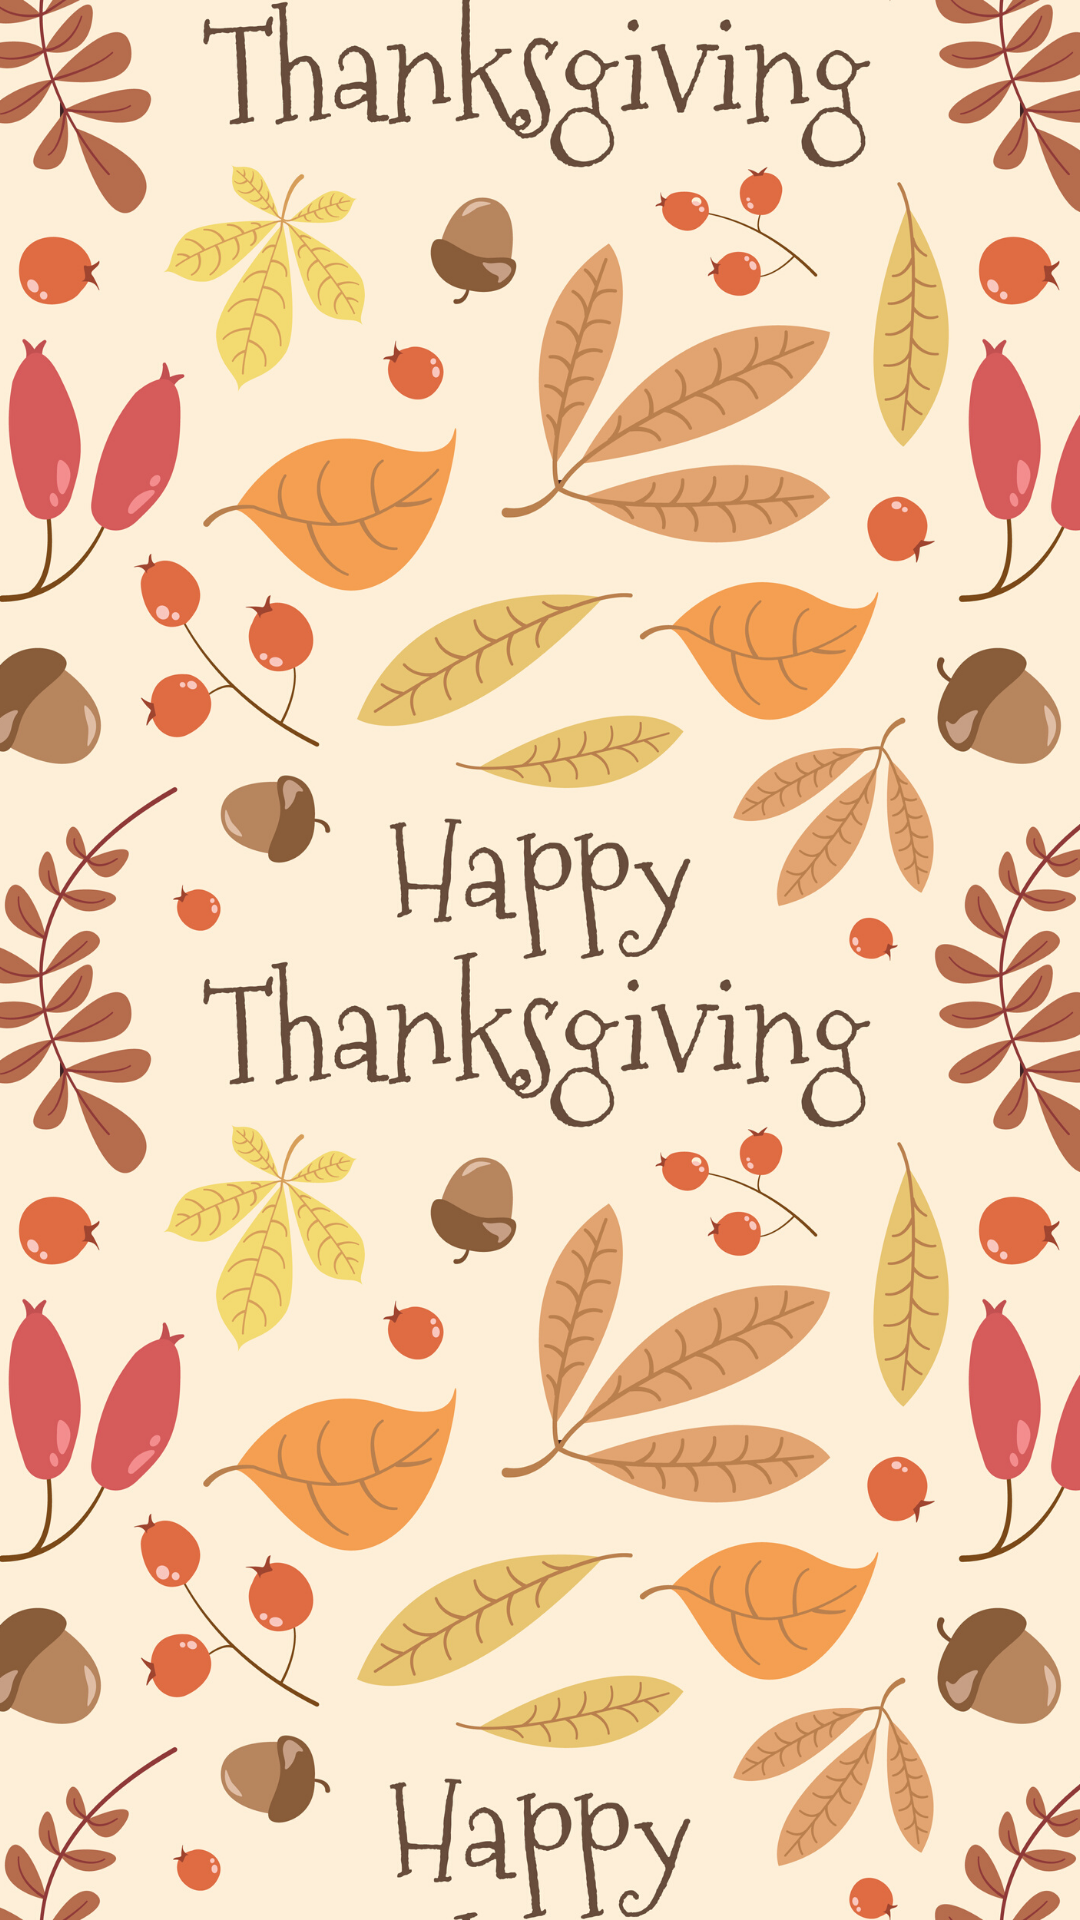 Vector seamless Thanksgiving pattern; autumn leaves, berries and acorns; lettering \Happy Thanksgiving\. Holiday design for greeting card, gift box, wallpaper, wrapping paper, web design. - Vector